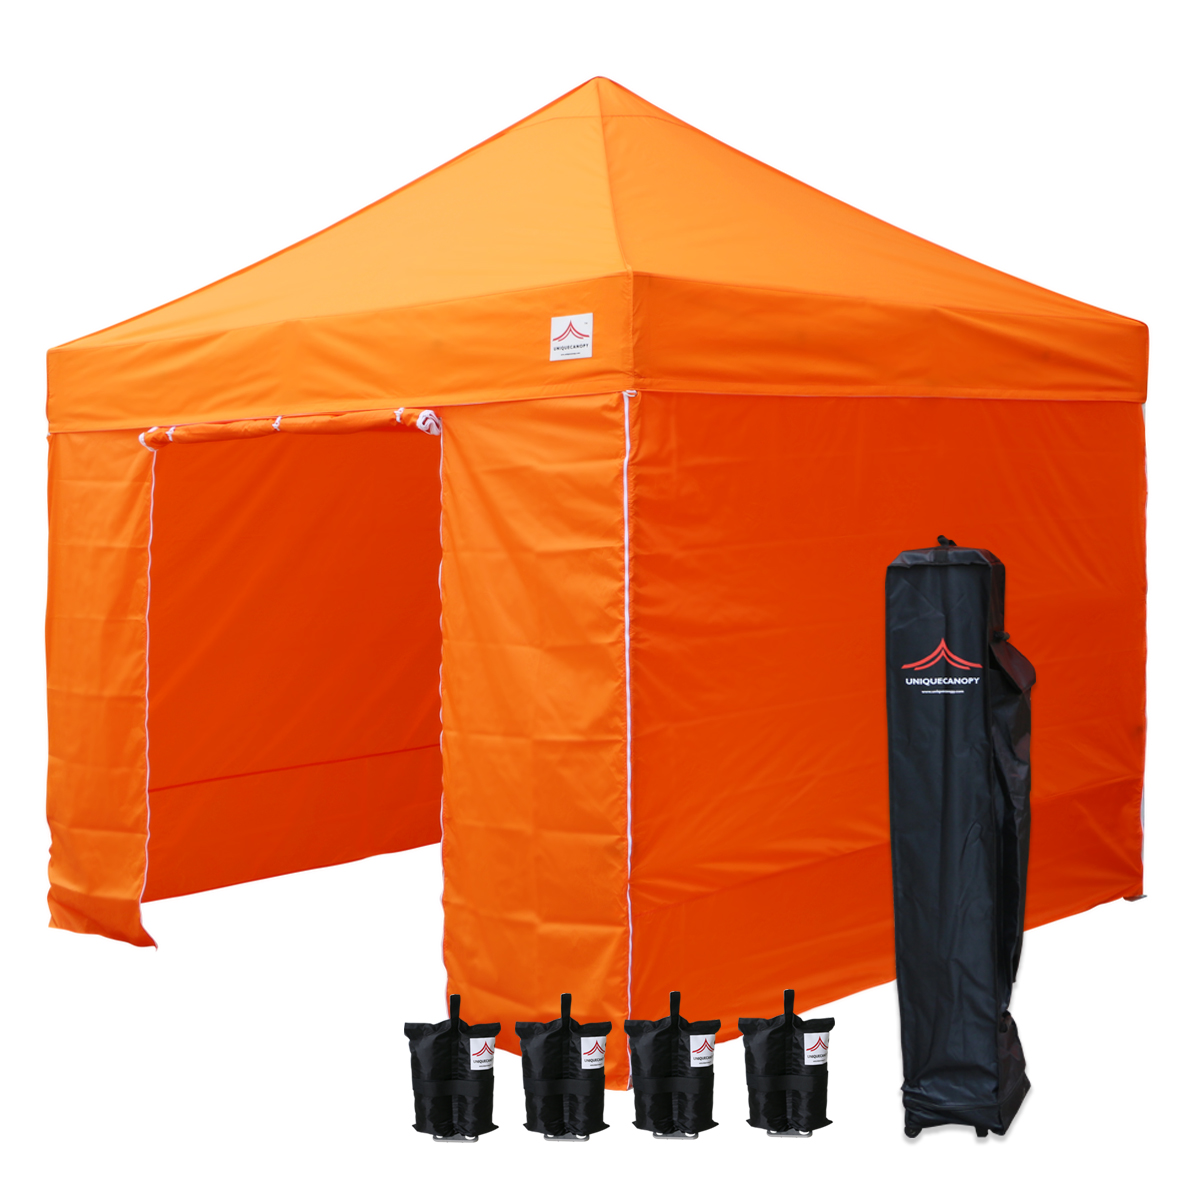 10x10 canopy tent with orange sides